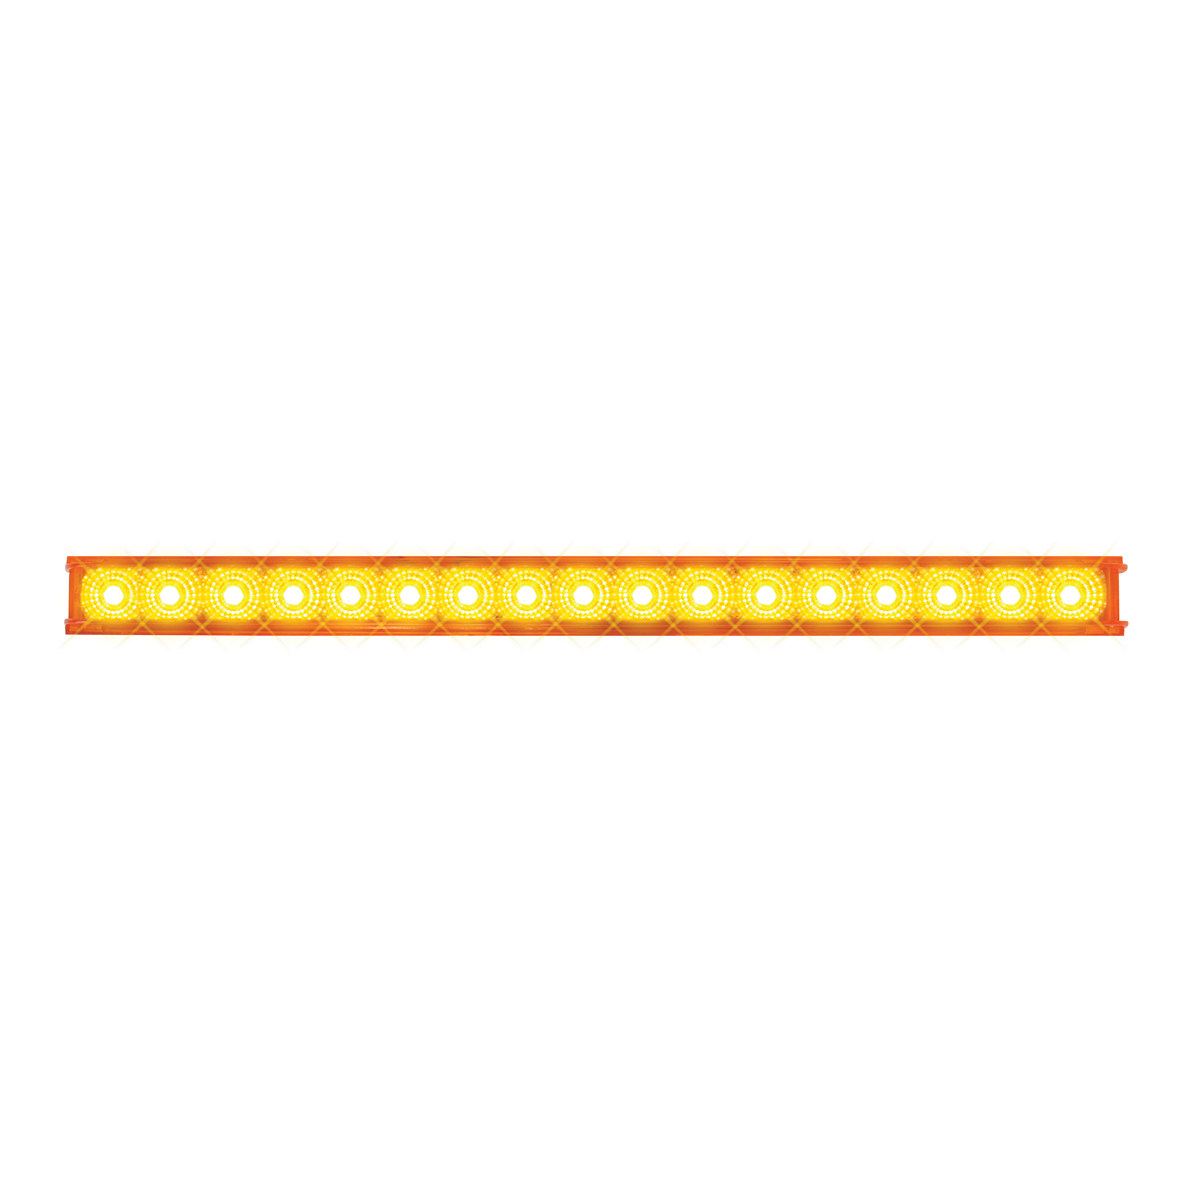 "76980 20"" Spyder LED Light Bar"